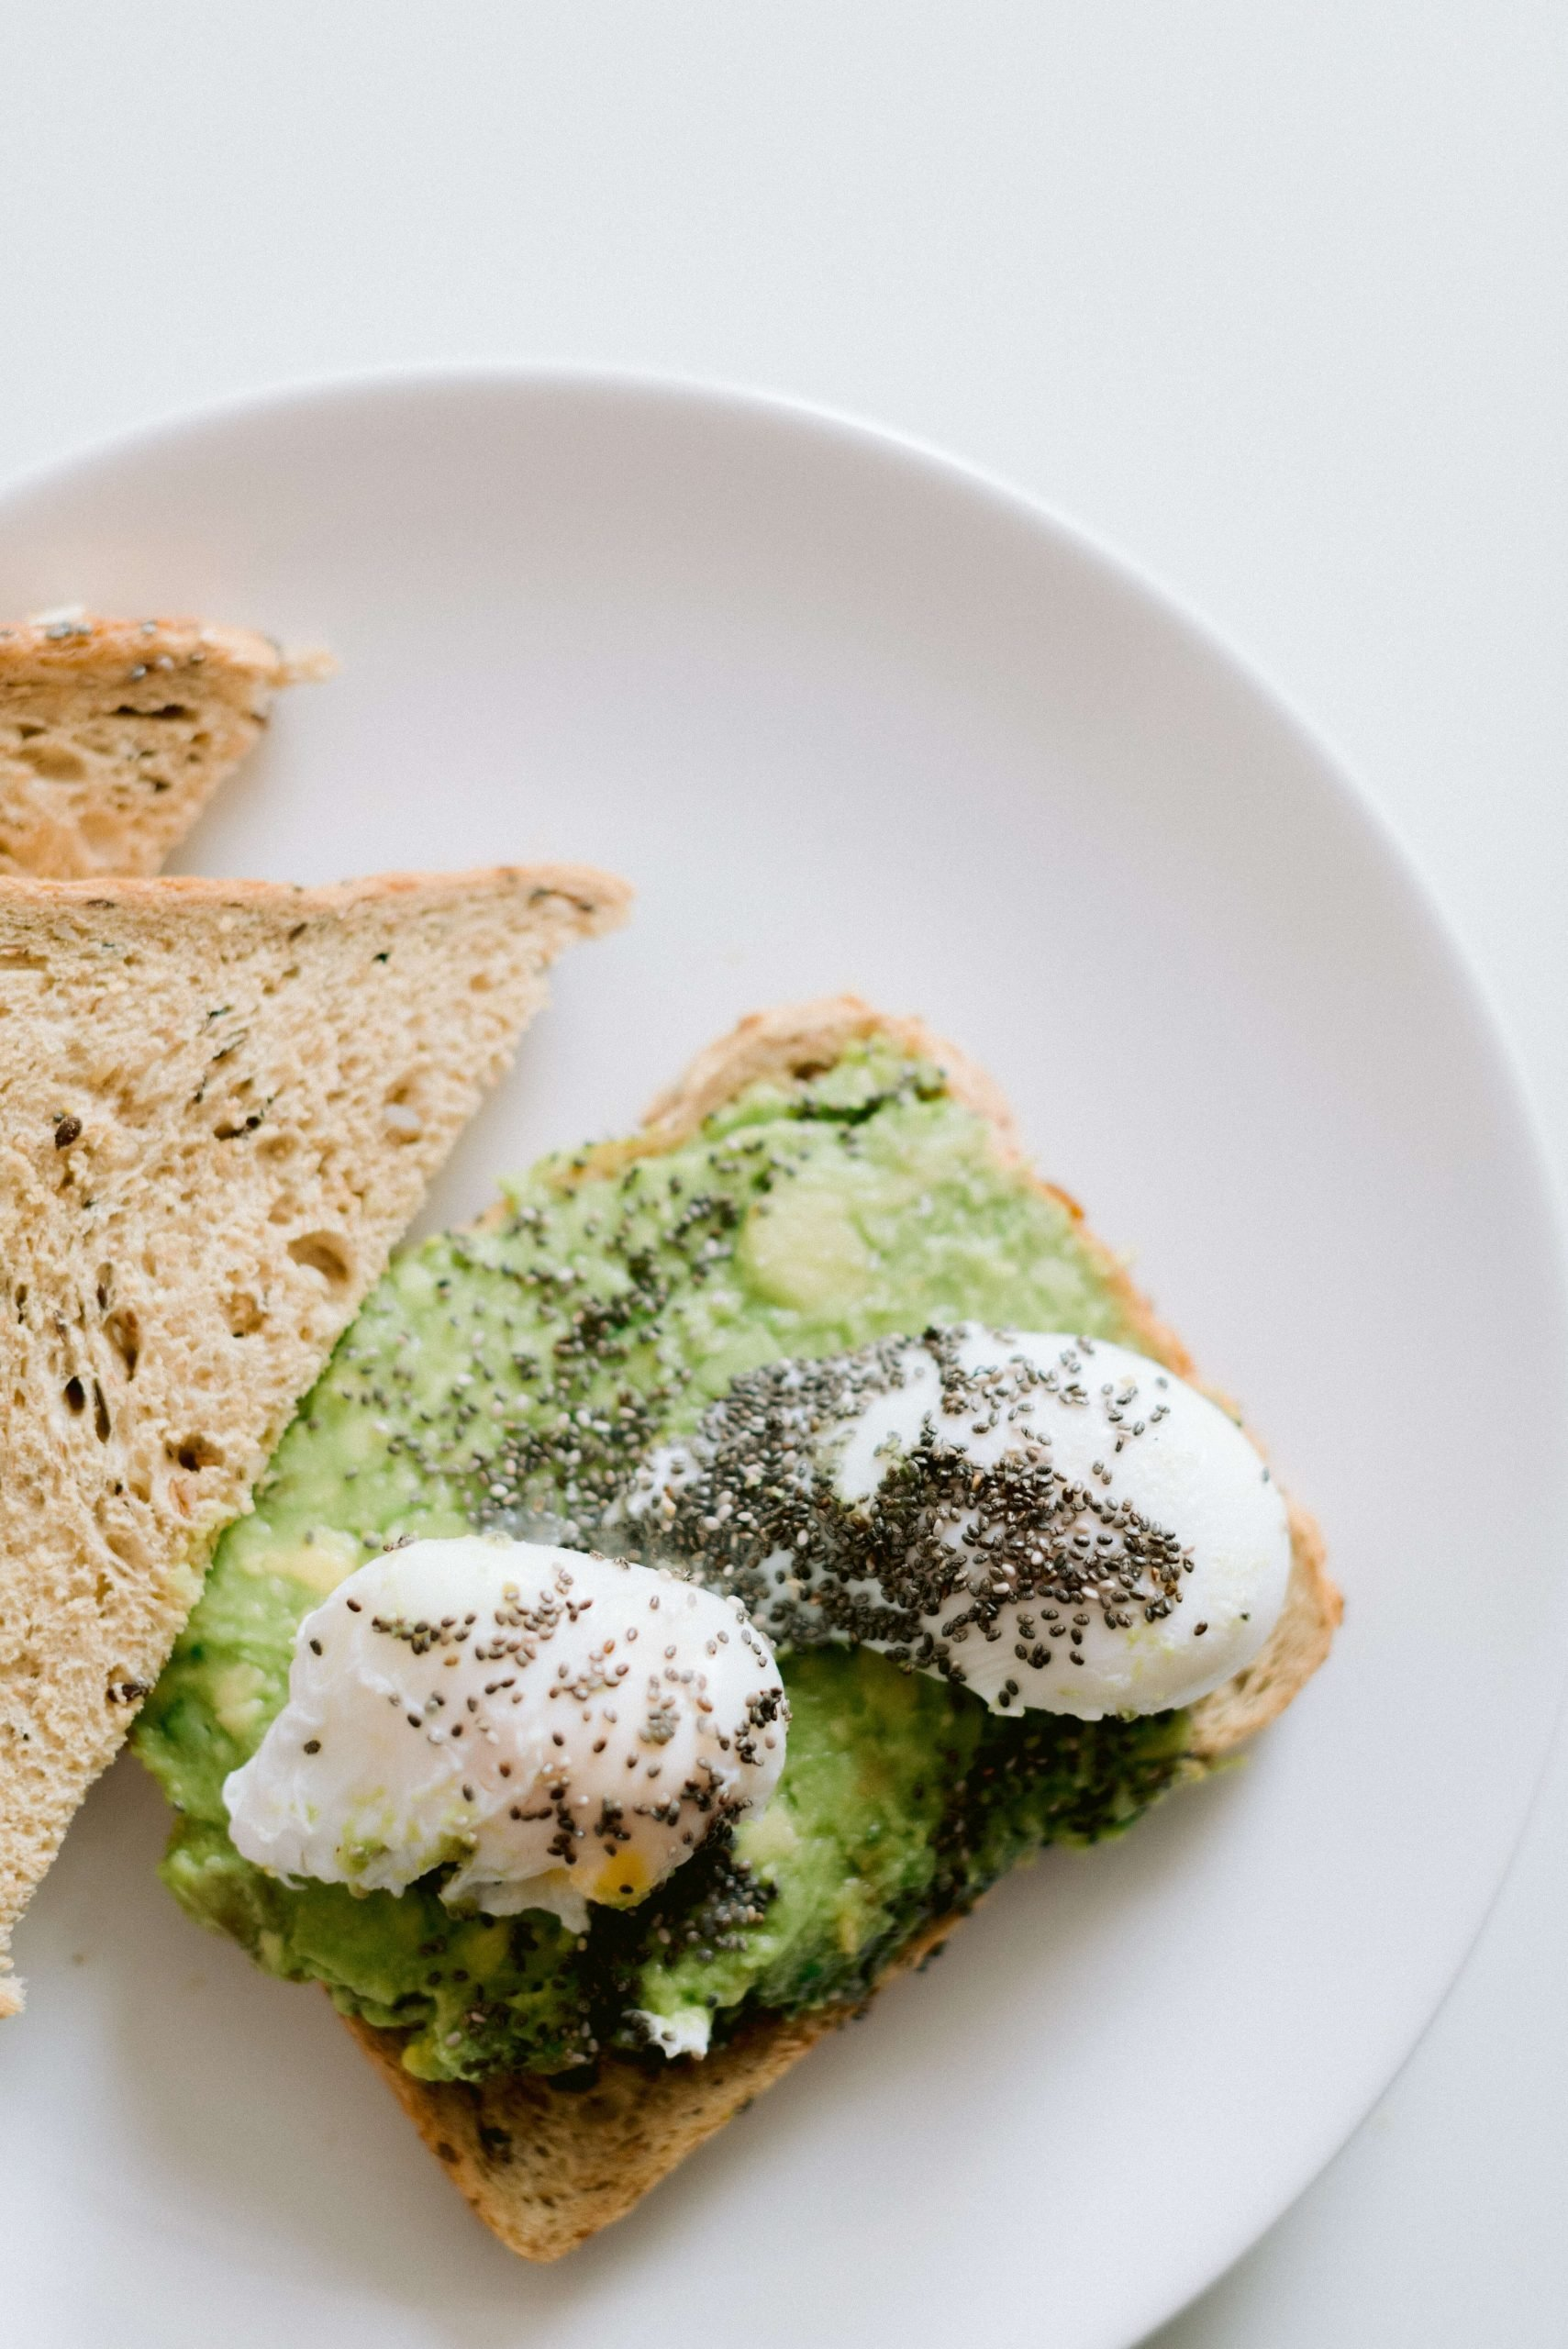 Wedding Planning Well-Being Tips | In Photo: two poached eggs with poppy seeds on toast with mashed avocado - Photo by Cristina Ilao www.cristinailao.com